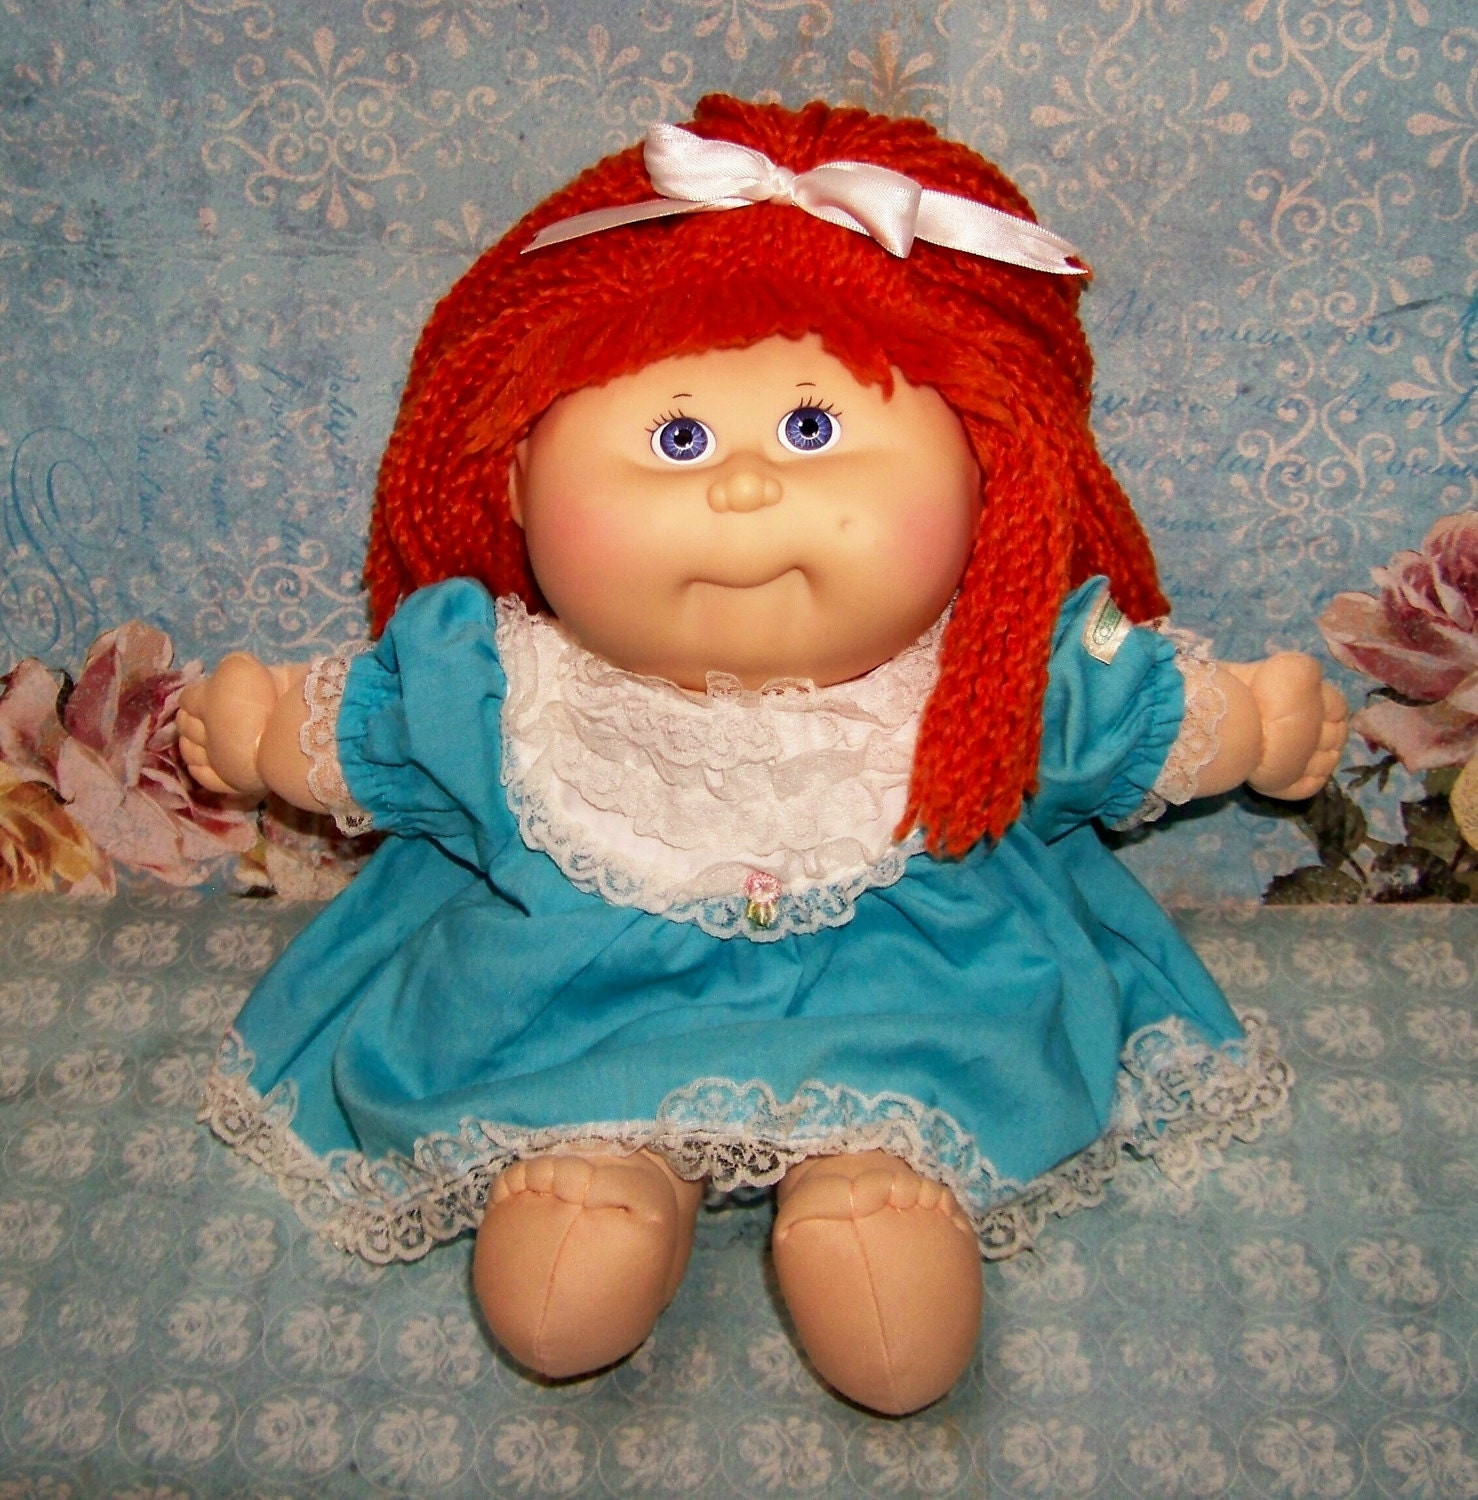 Very Nice Vintage Darling Red Hair Cabbage Patch Doll Mona